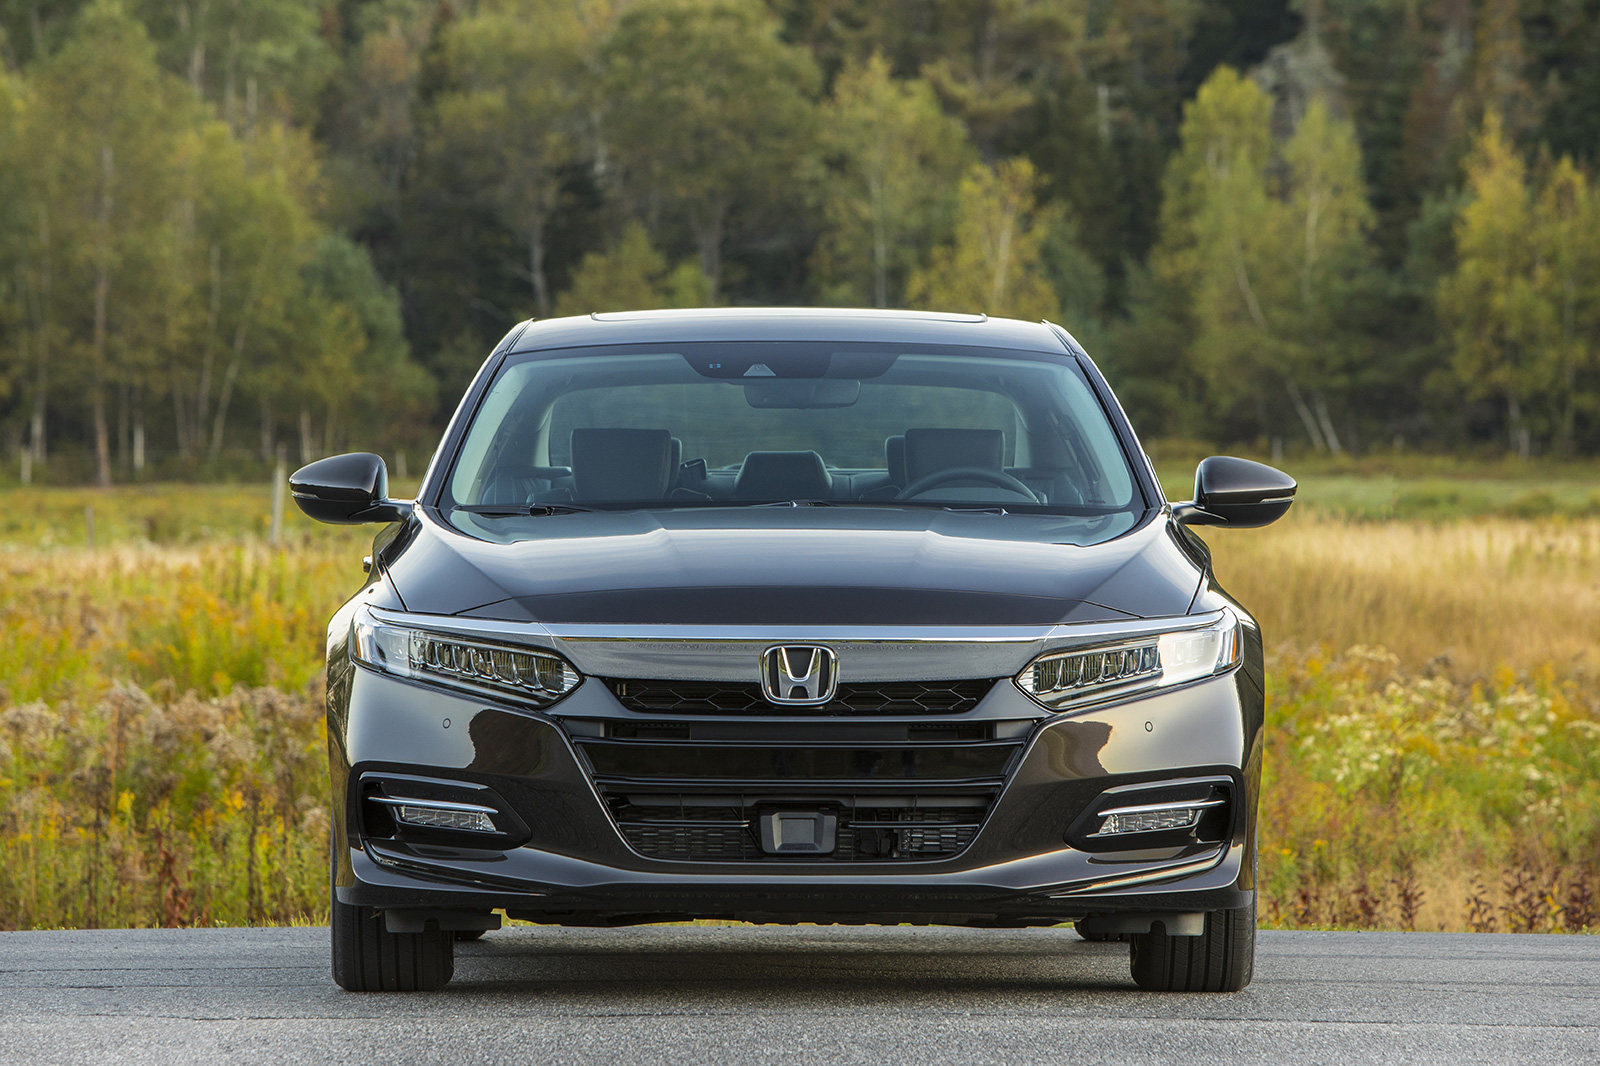 accord hybrid first drive cars review in motion quarter front three honda